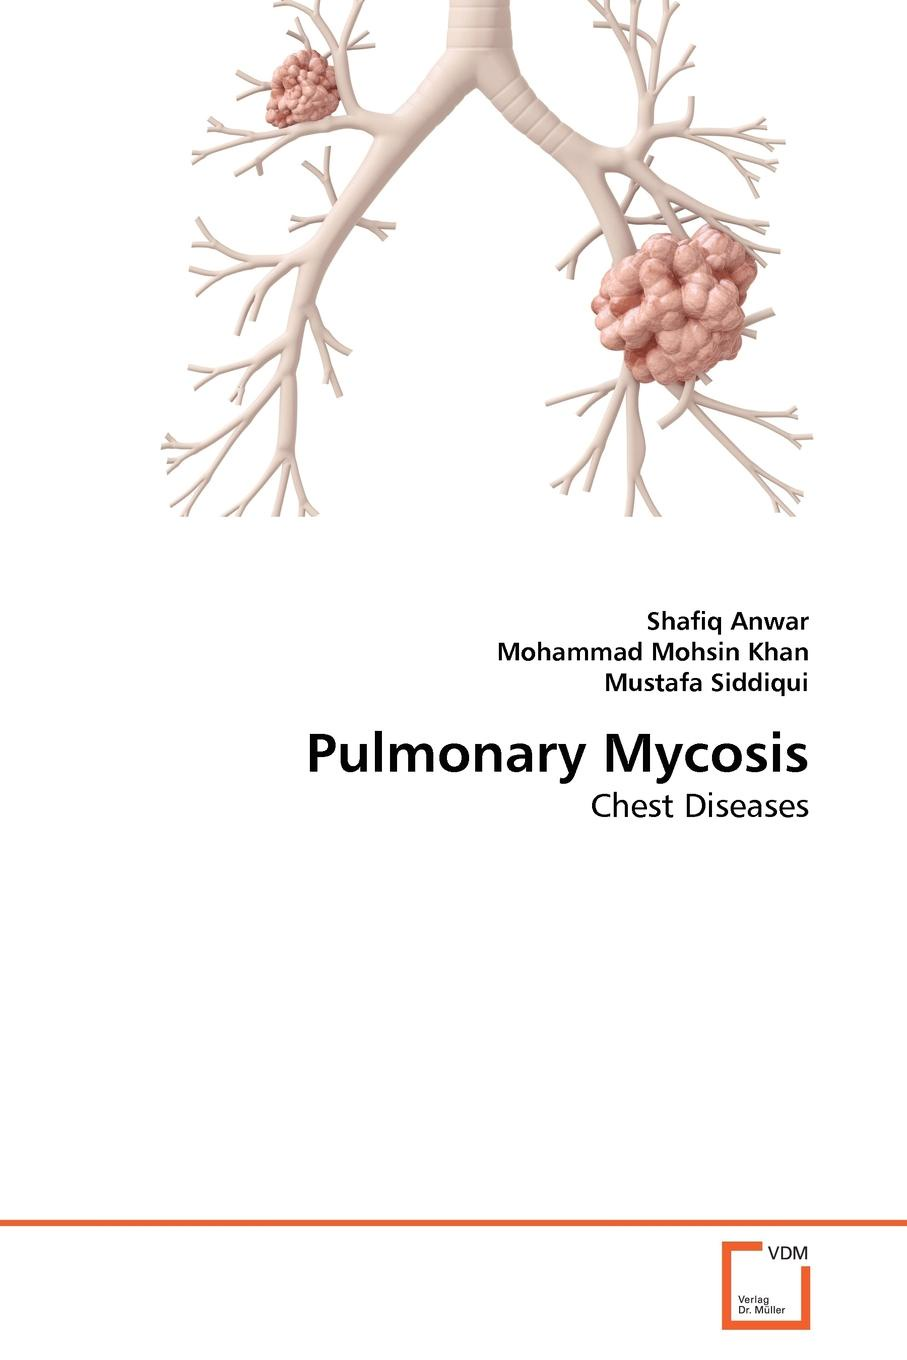 Shafiq Anwar, Mohammad Mohsin Khan, Mustafa Siddiqui Pulmonary Mycosis effect of rosemary extracts on the growth of skin infections